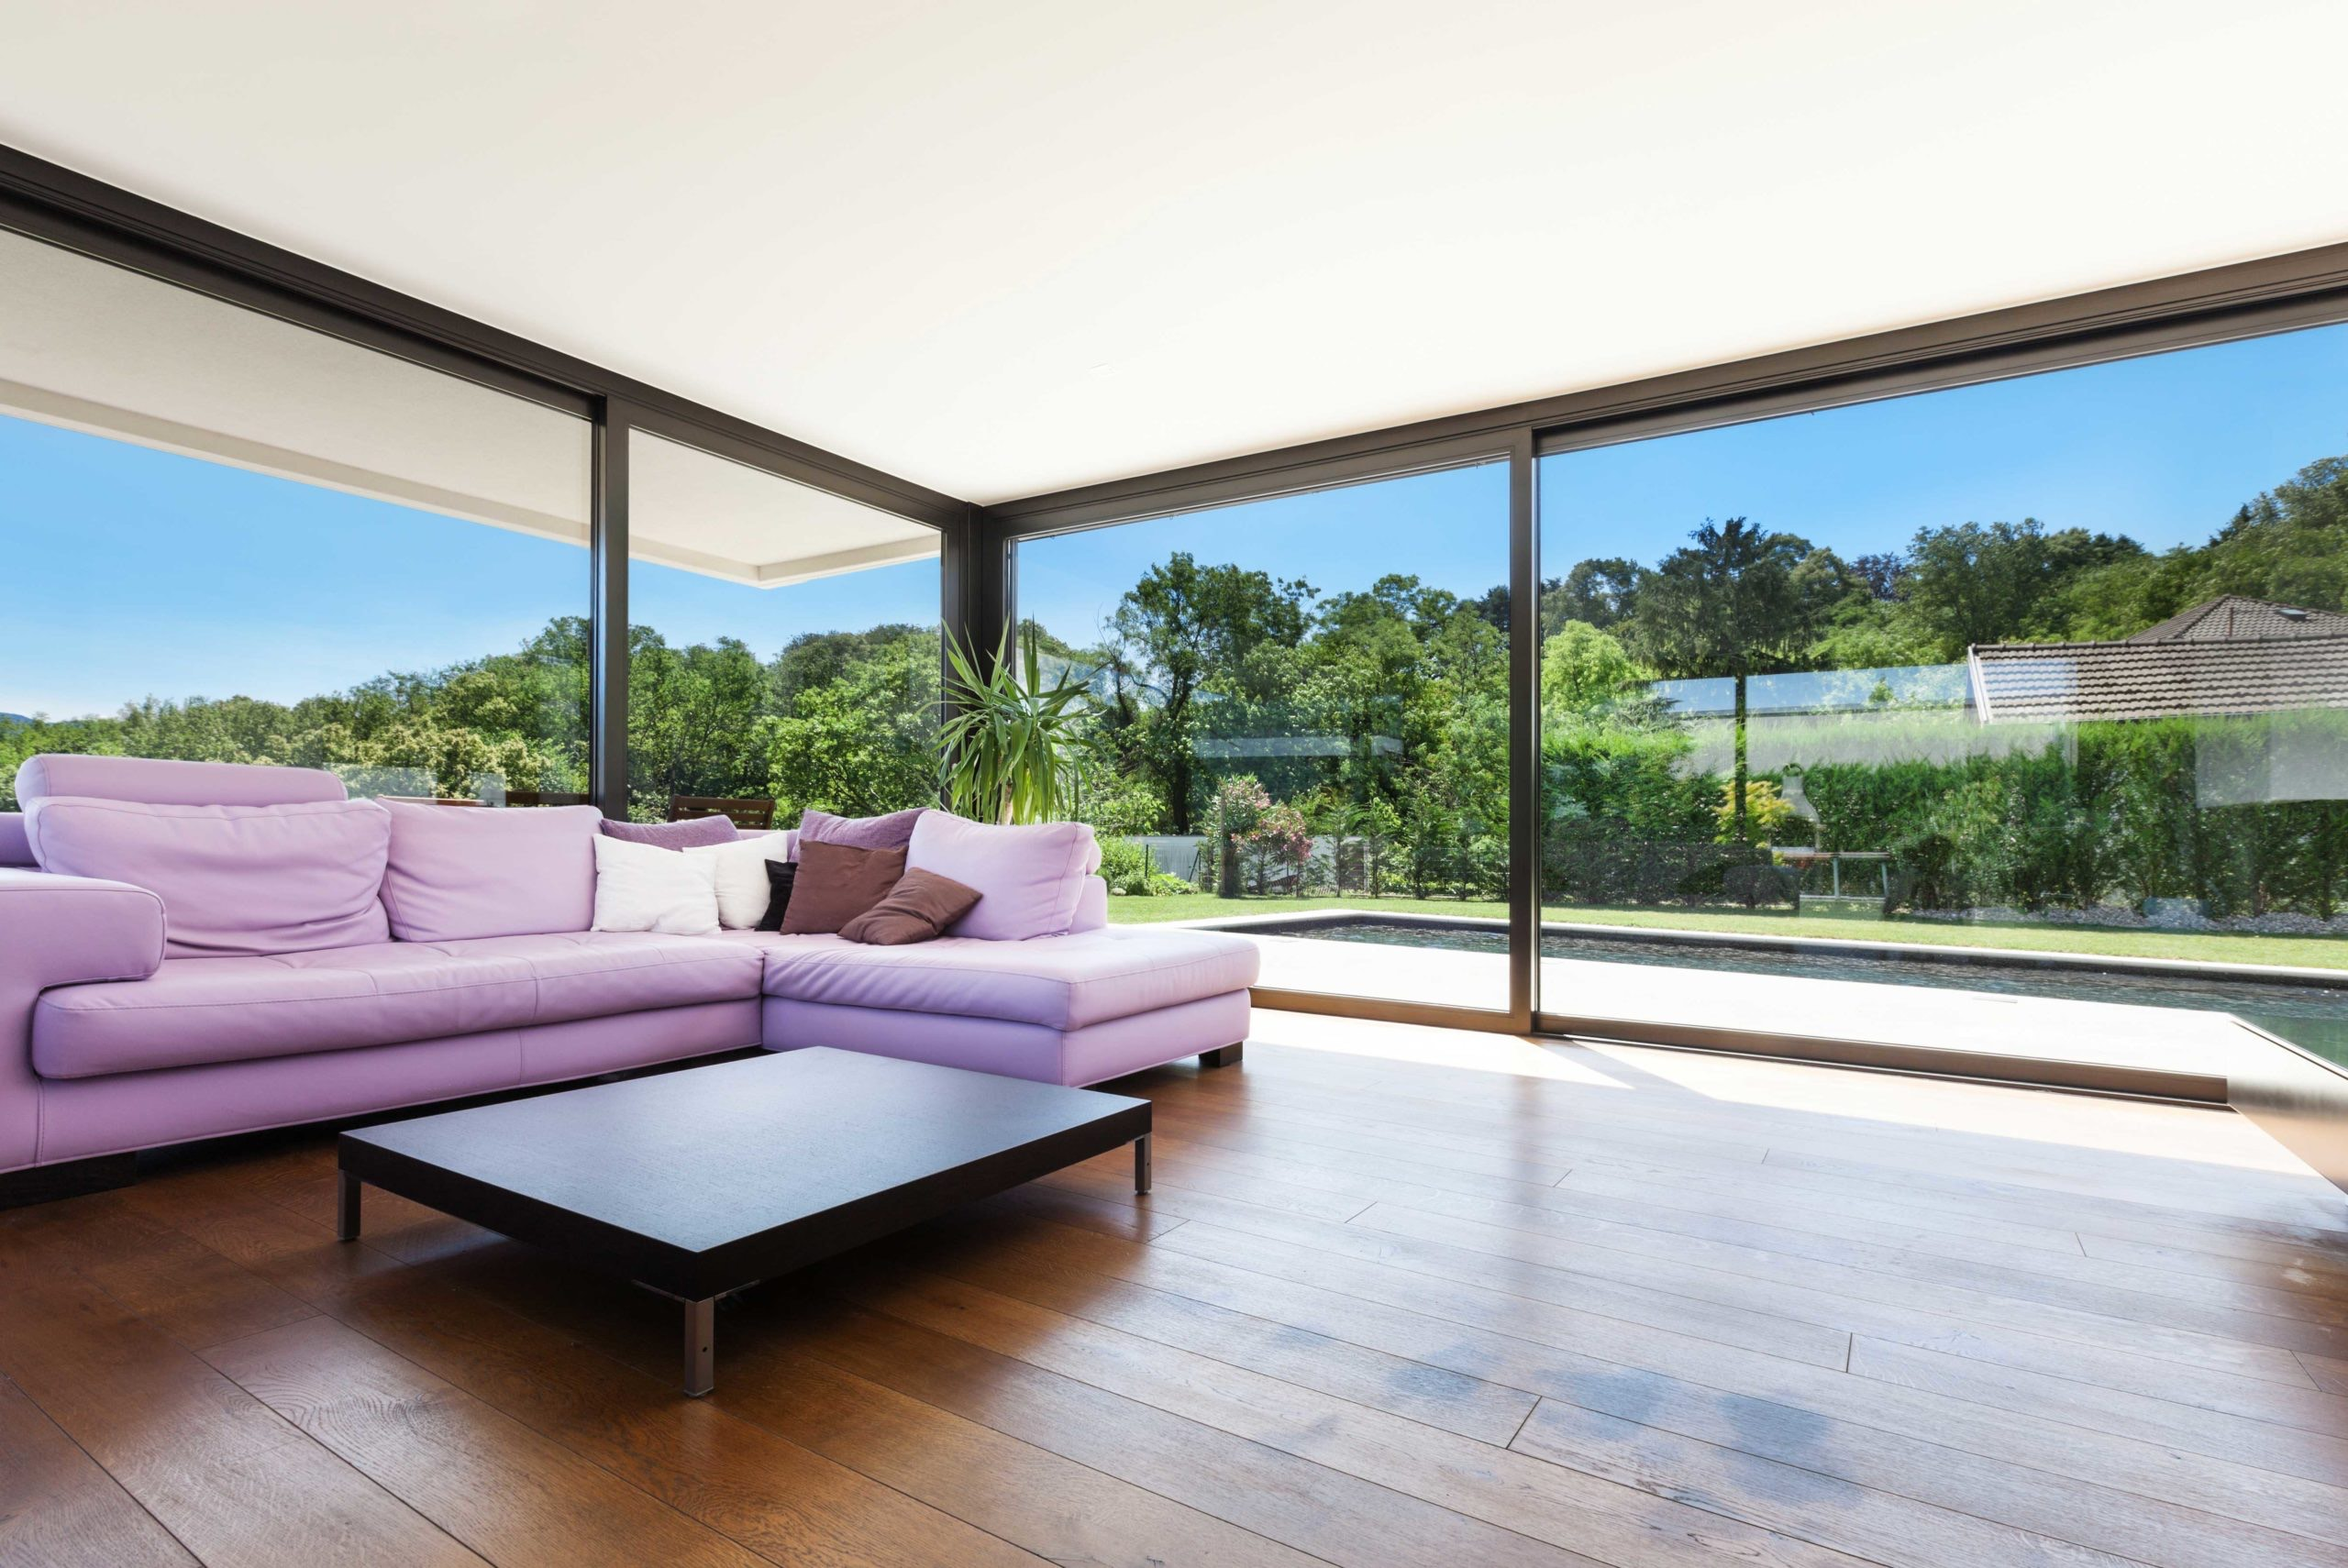 Sliding Doors for homeowners in Welling